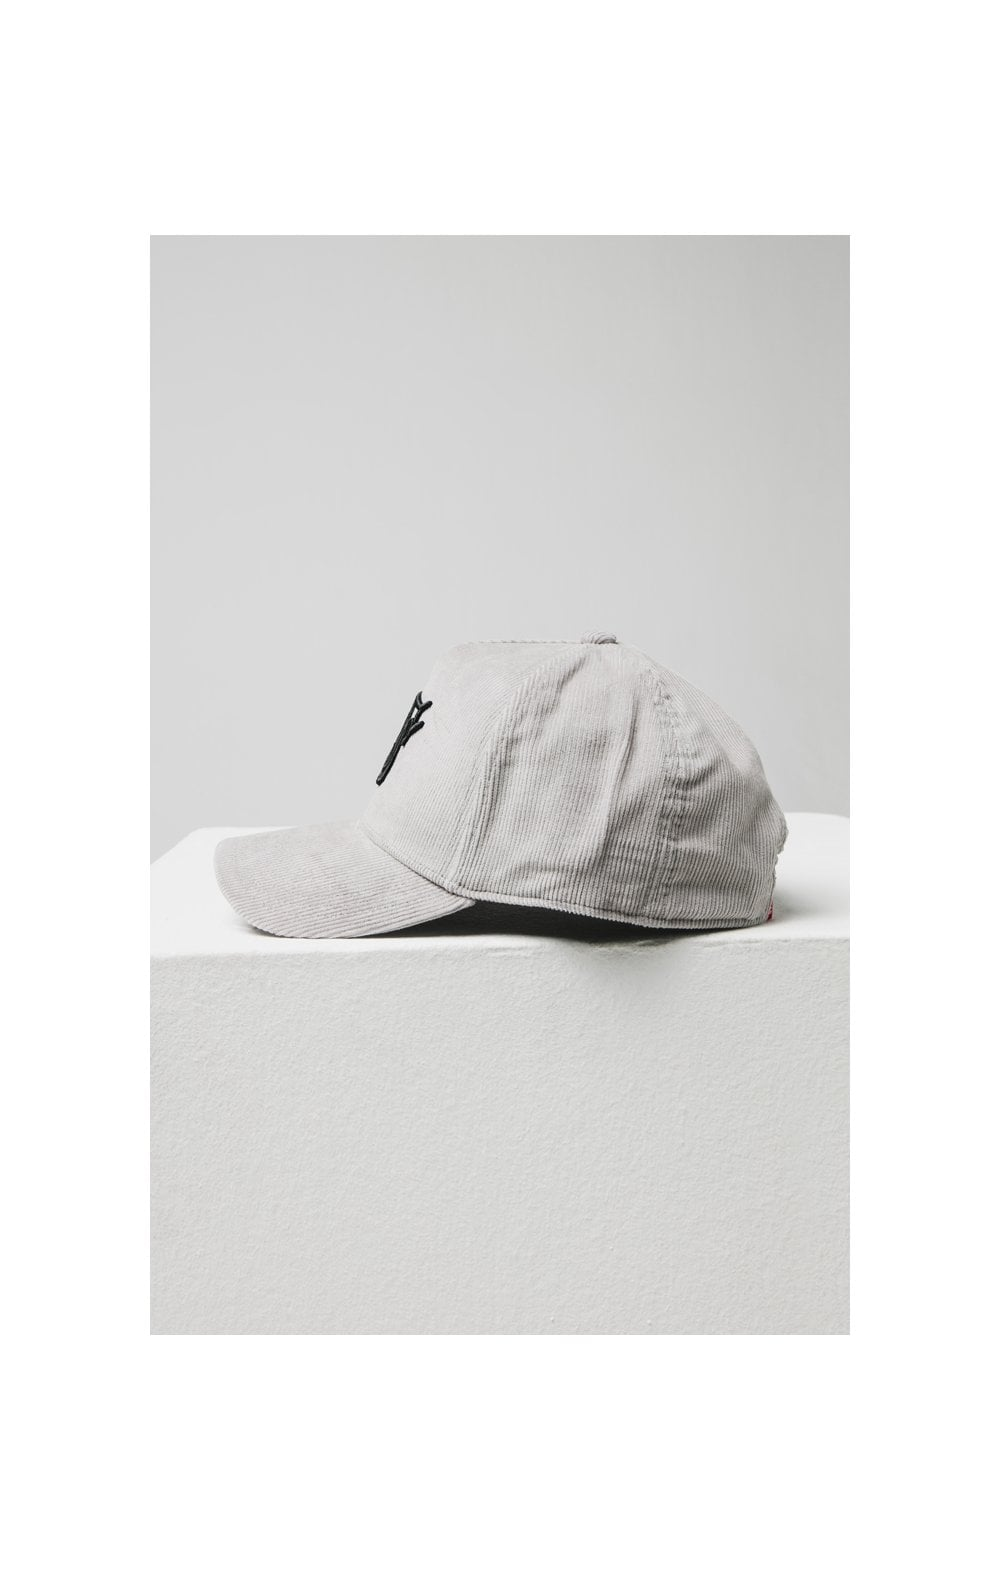 SikSilk Corduroy Full Trucker - Light Grey (3)